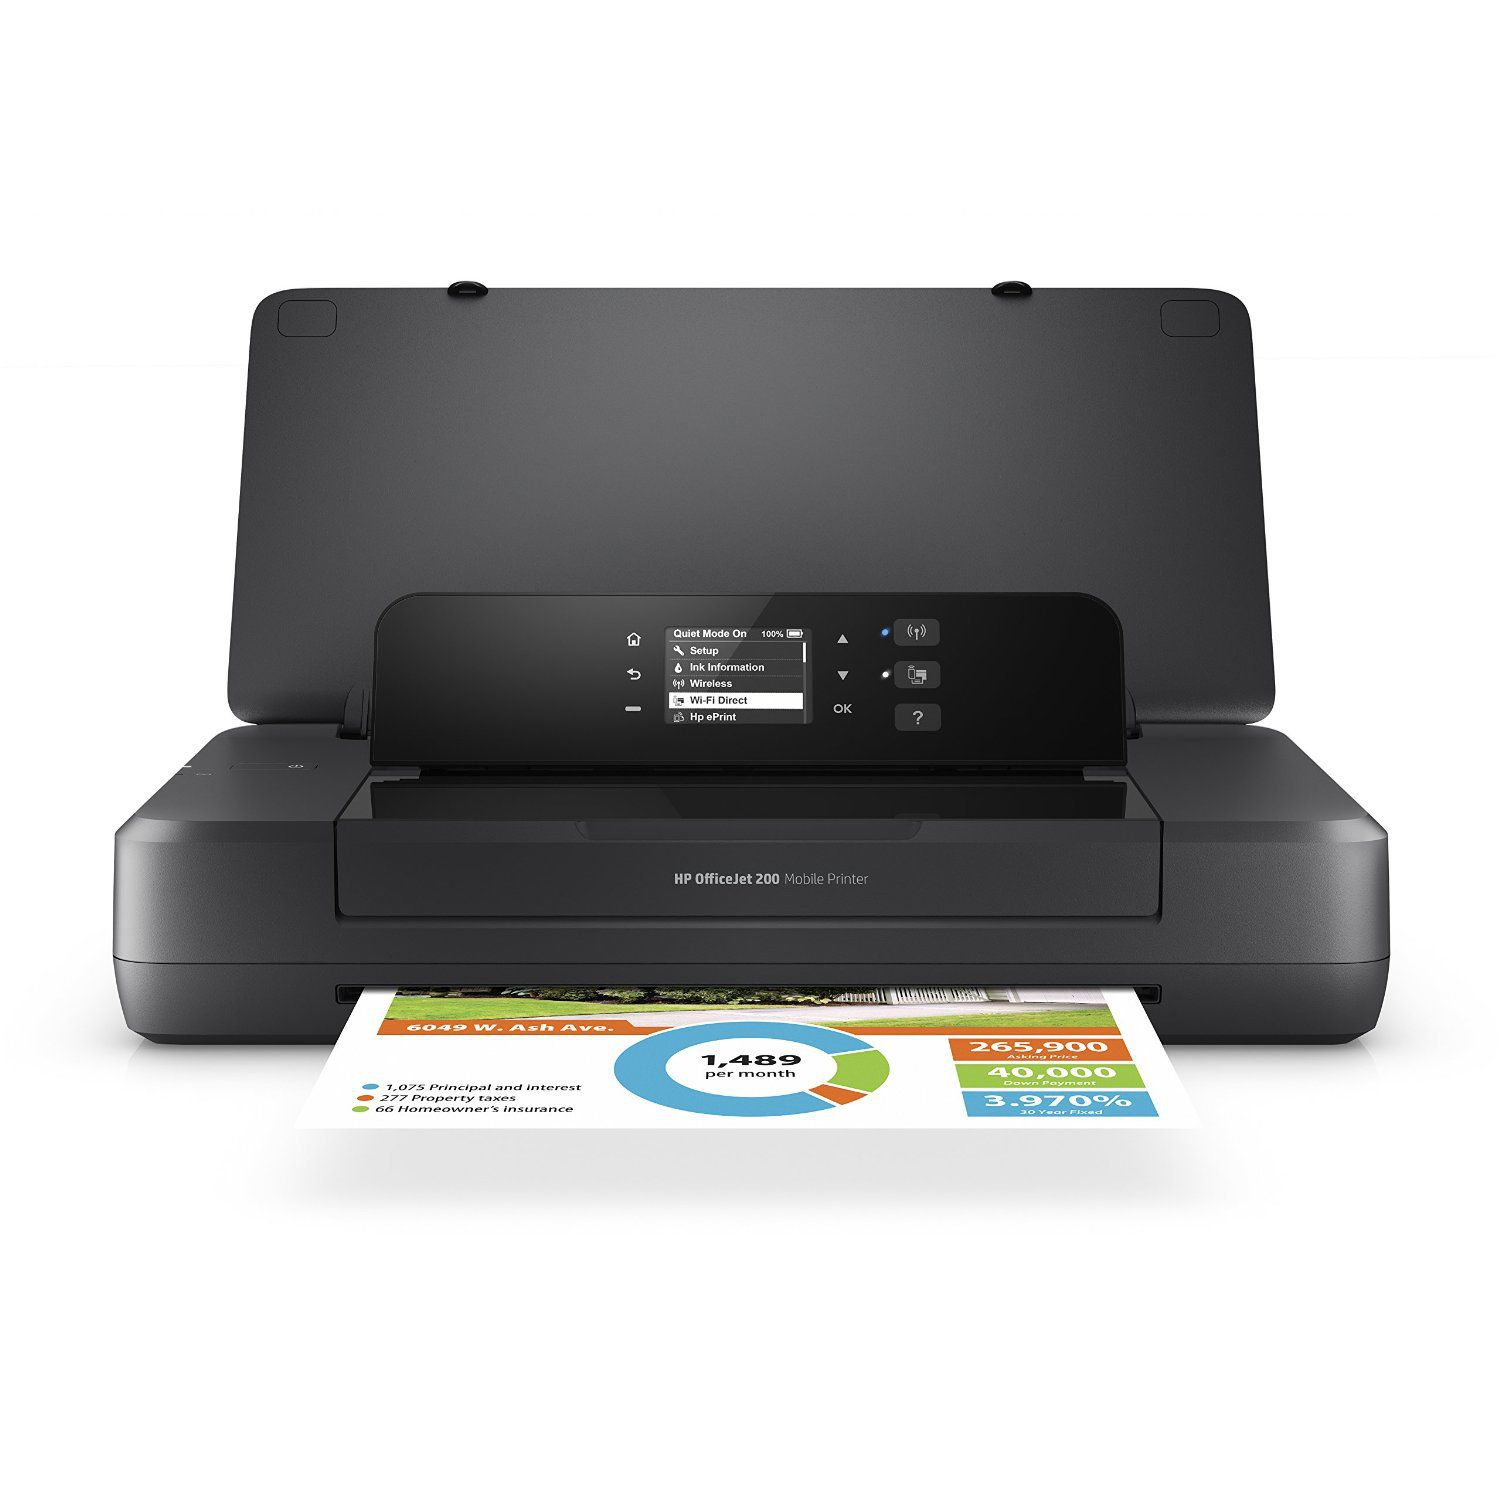 HP OfficeJet 200 printer